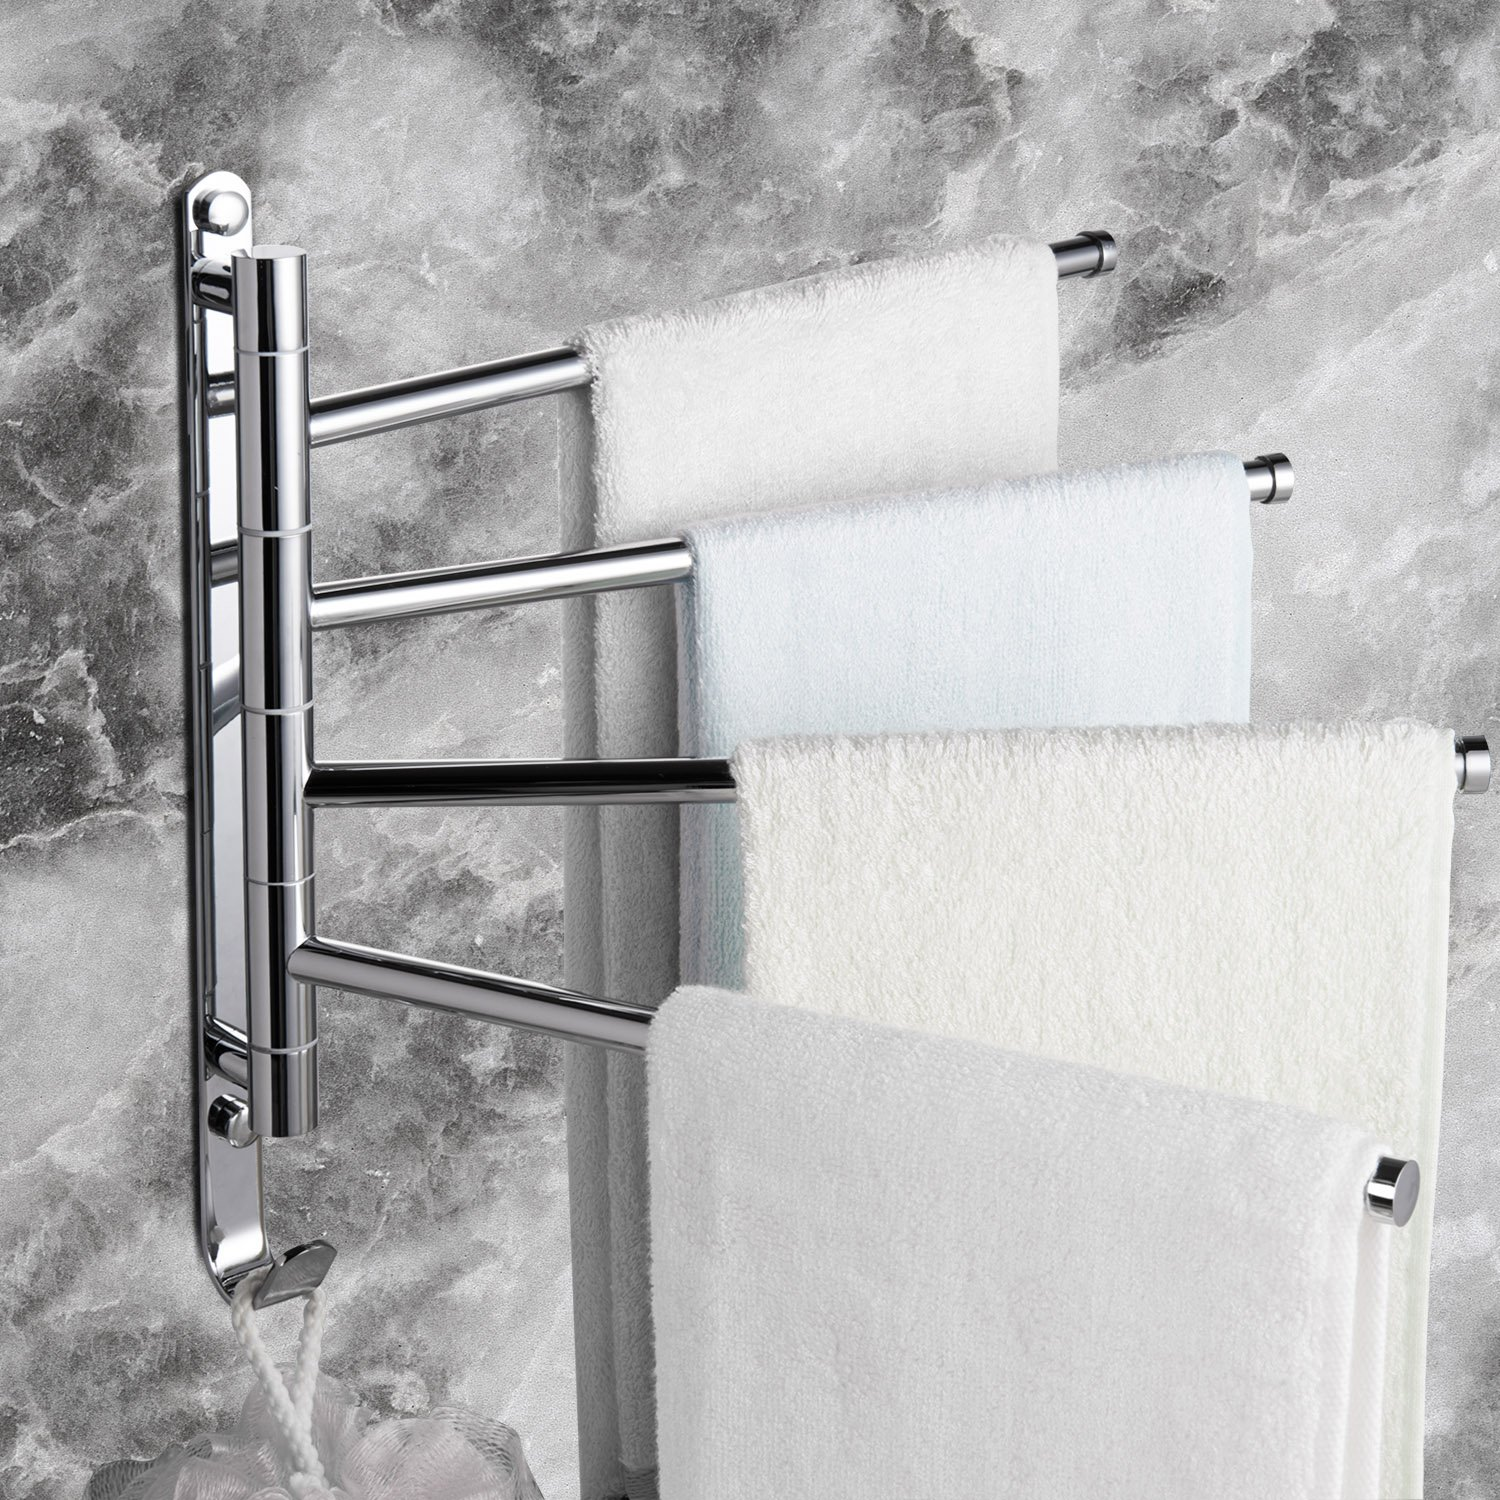 Where To Put Towel Bars In Bathroom: Sprinkle Contemporary Modern Chrome Finish Towel Bar Set